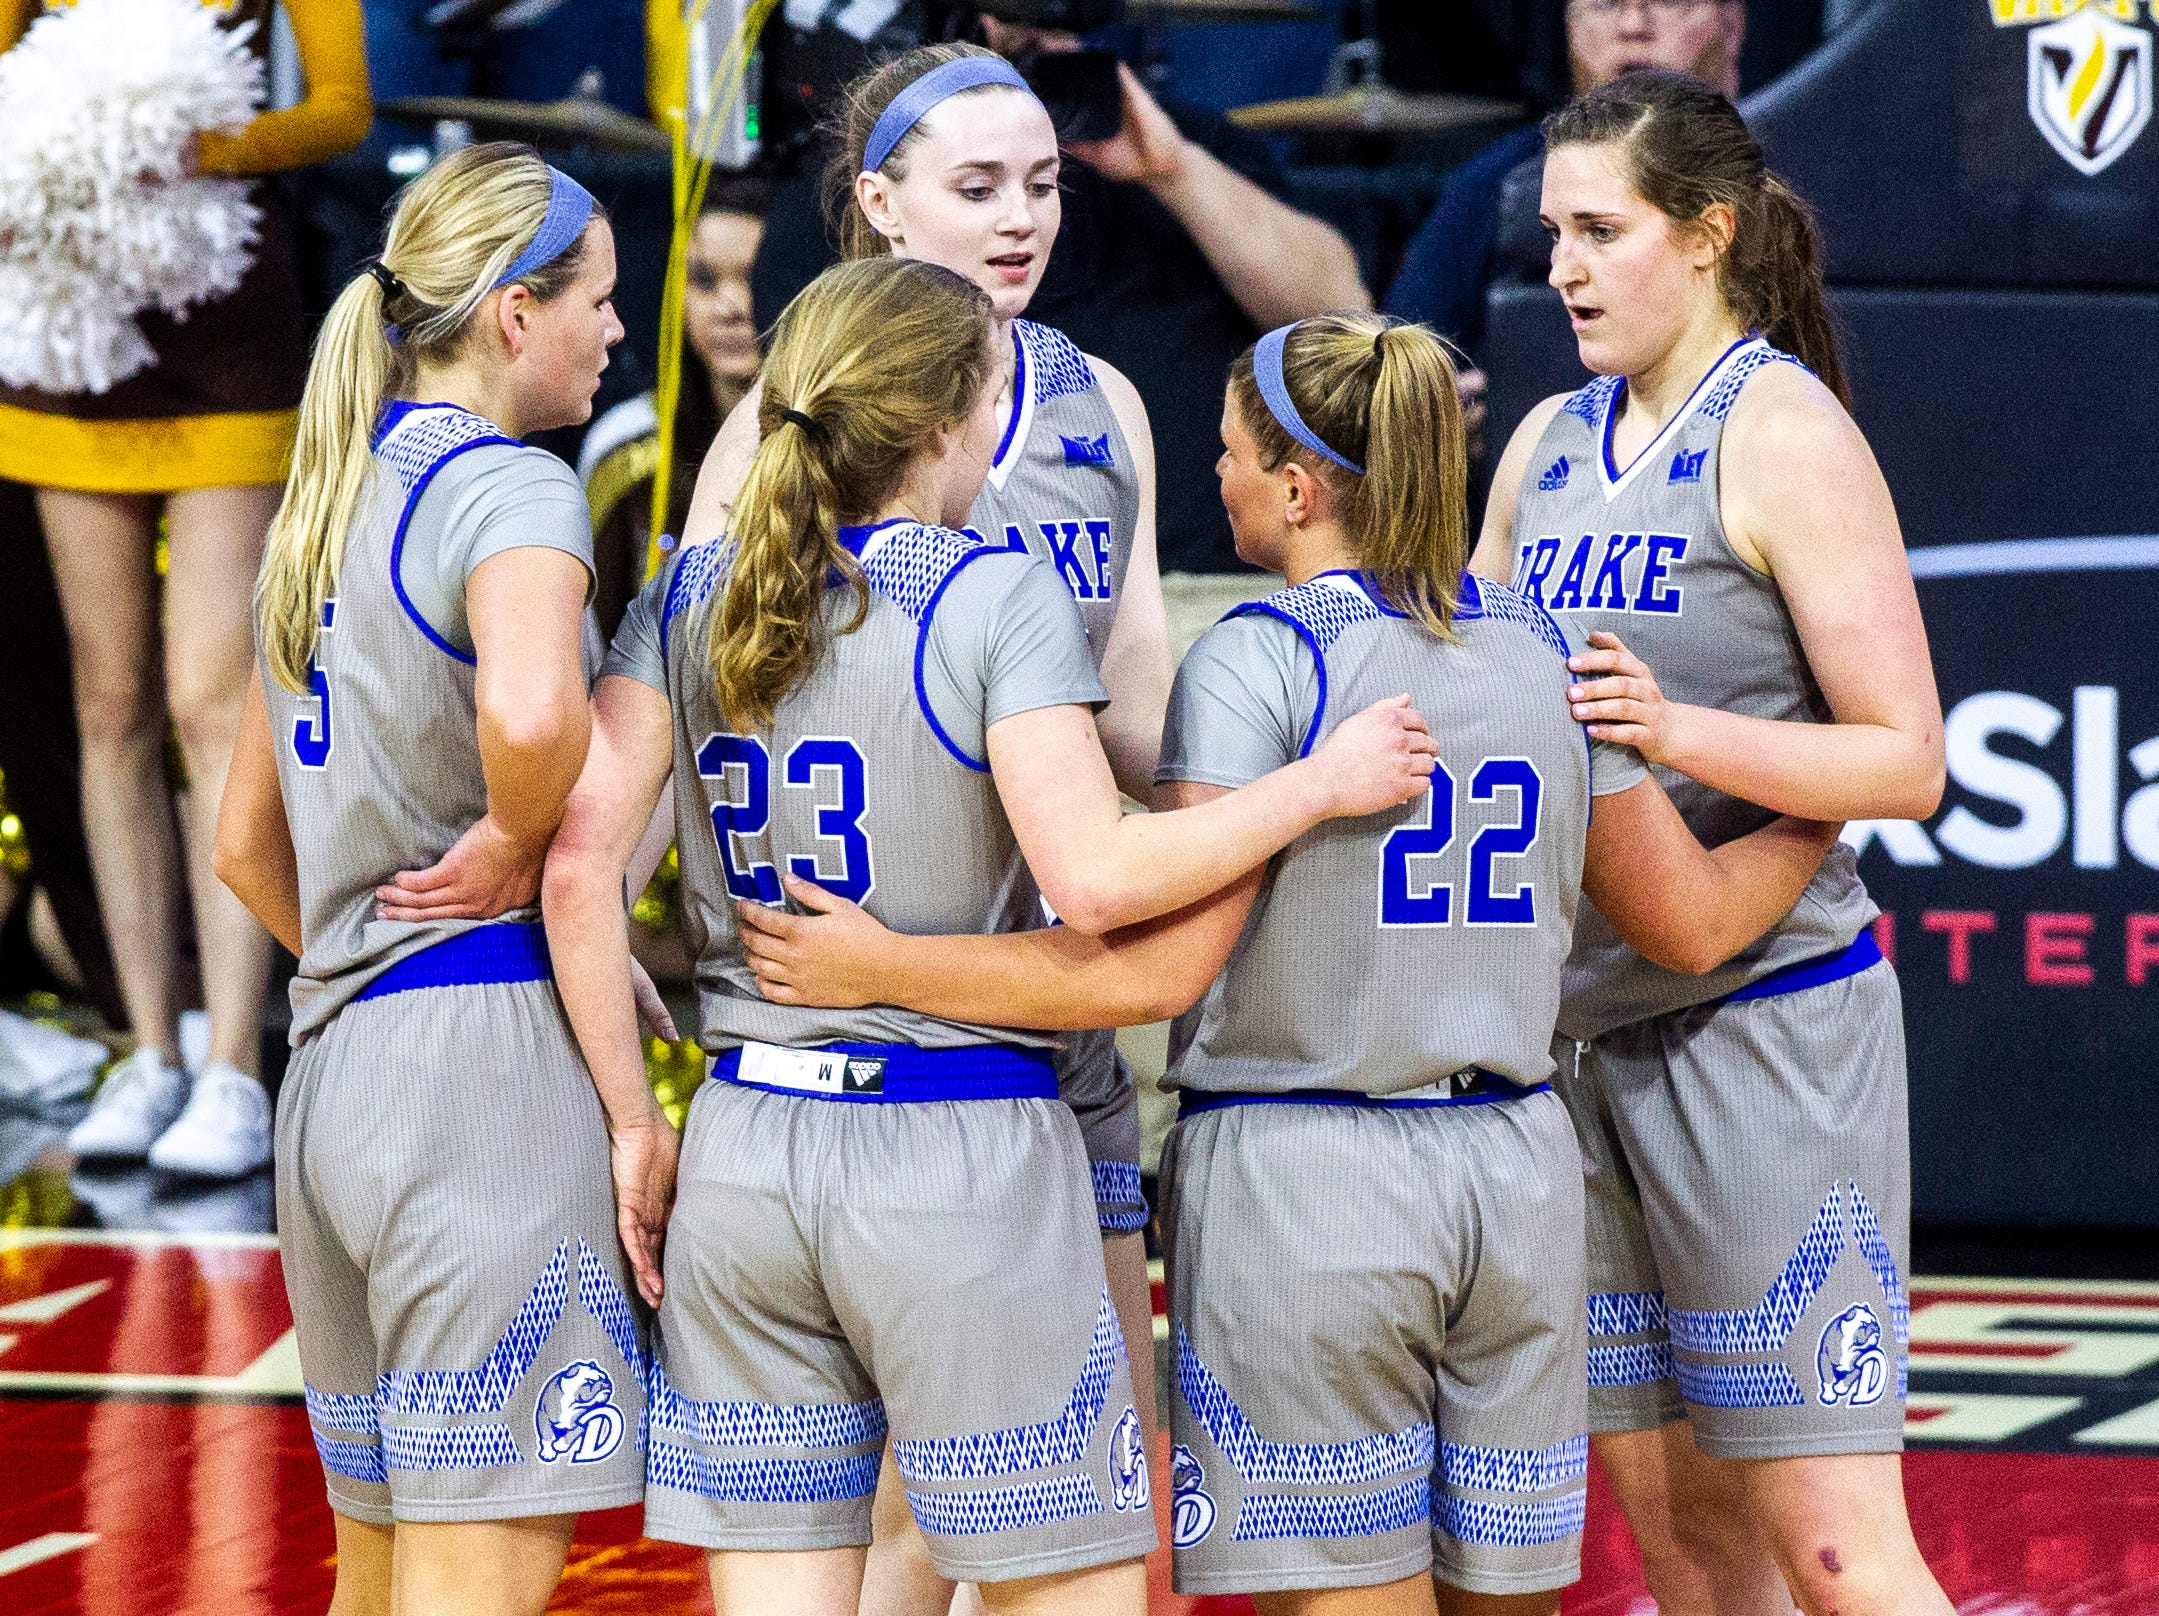 Drake Bulldogs, from left, Becca Hittner (5), Maggie Negaard (23) Mya Mertz, Hannah Fuller (22) and Monica Burich huddle up during a NCAA Missouri Valley Conference women's basketball quarterfinal tournament game, Friday, March 15, 2019, at the TaxSlayer Center in Moline, Illinois.